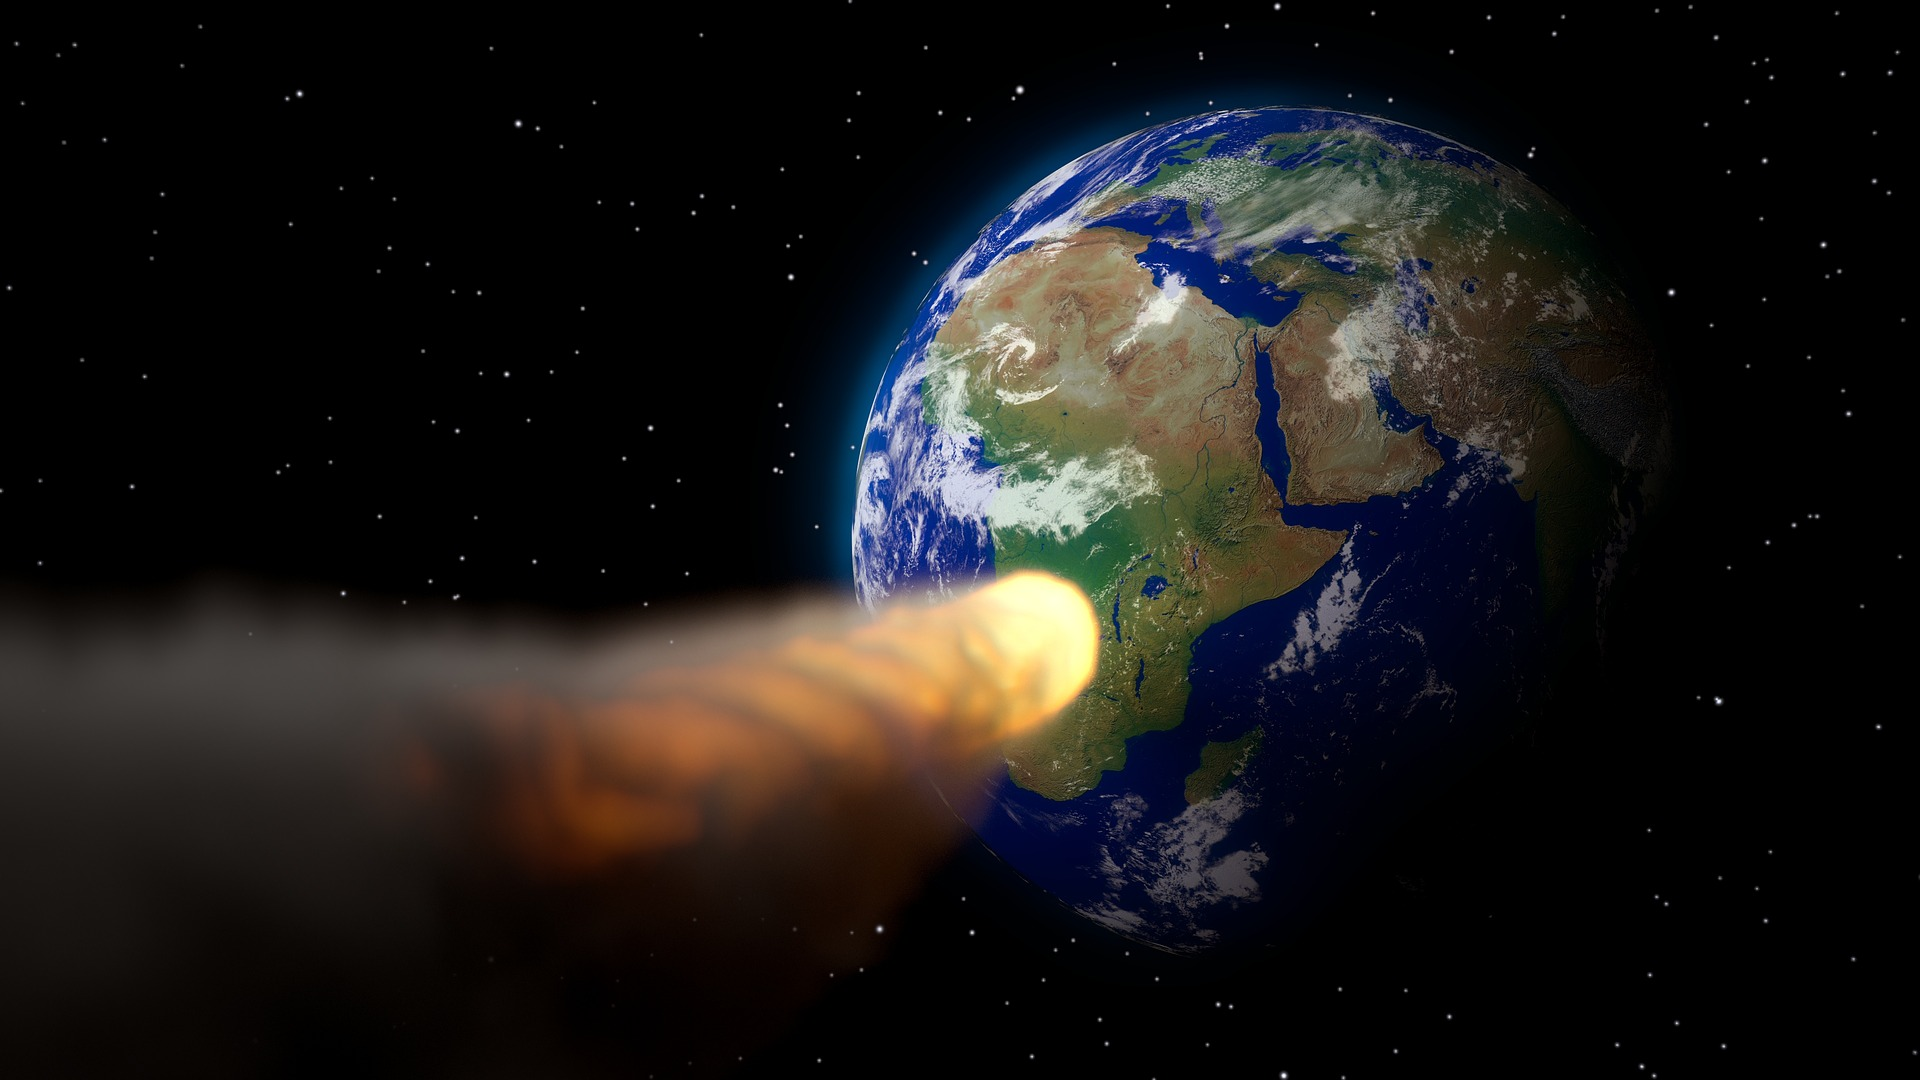 armageddon near earth objects